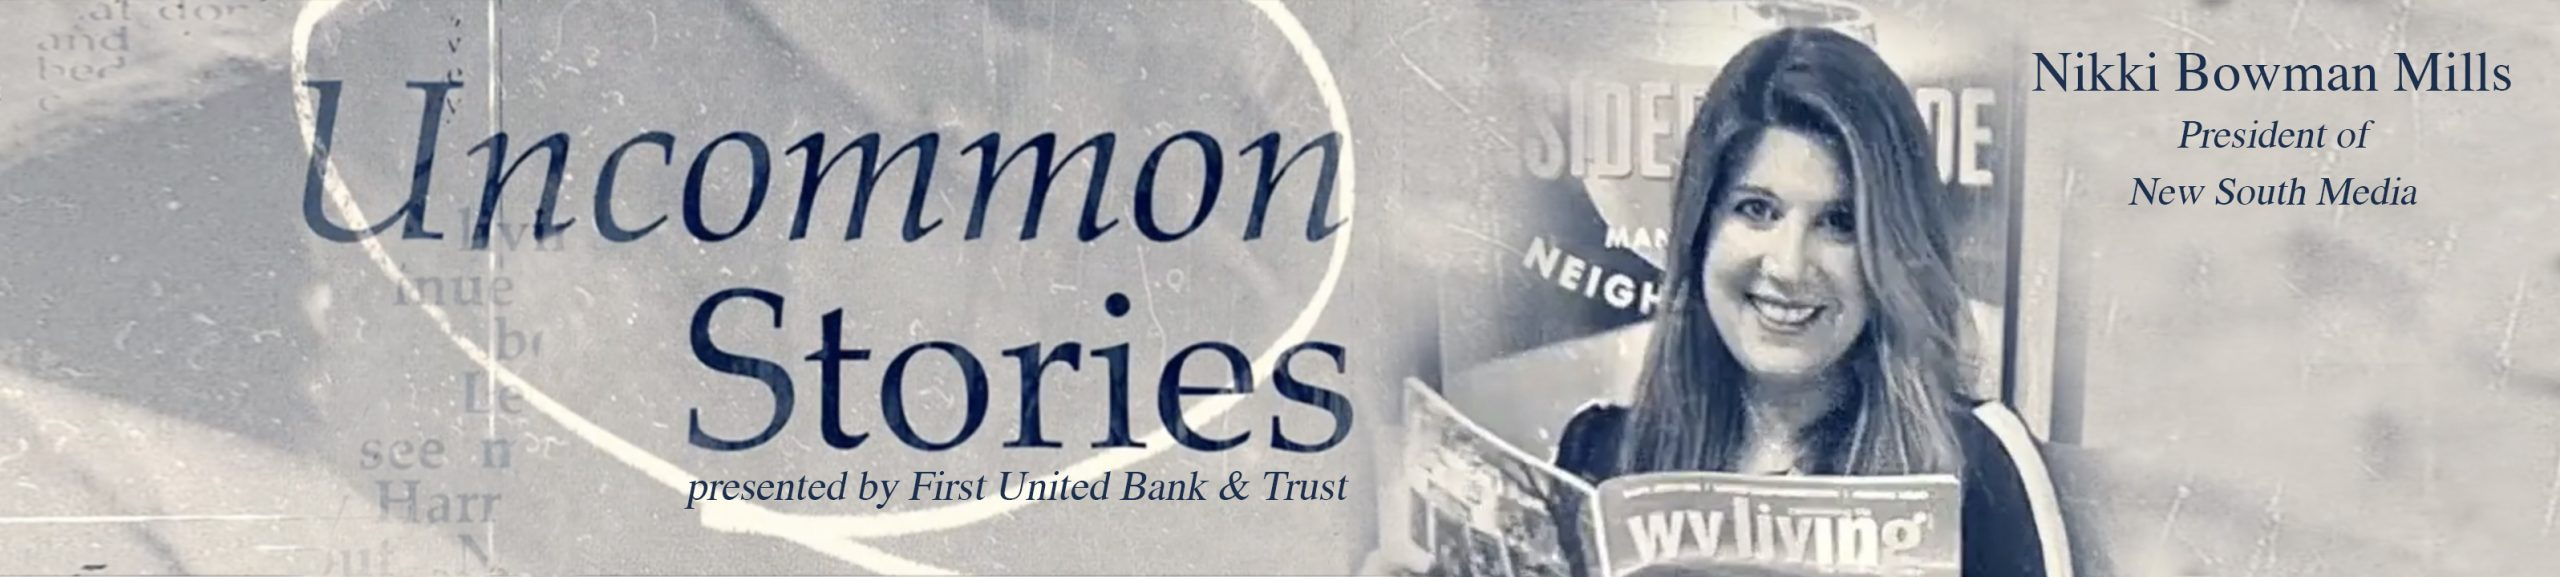 Uncommon Stories Image with New South Media